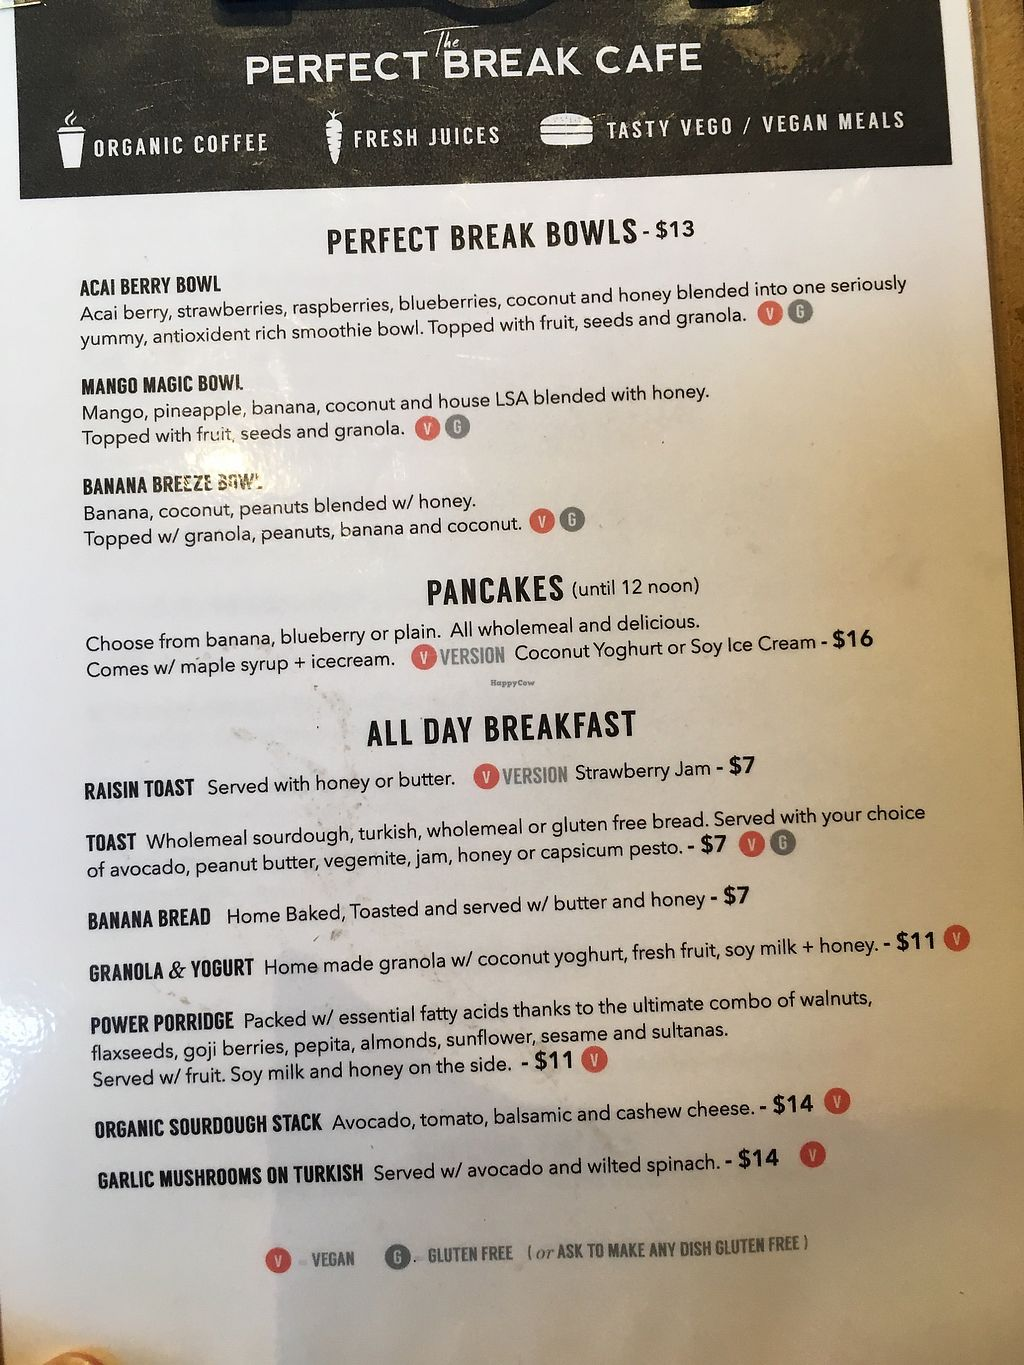 """Photo of Perfect Break Vegetarian Cafe  by <a href=""""/members/profile/Mslanei"""">Mslanei</a> <br/>menu 1 <br/> July 14, 2017  - <a href='/contact/abuse/image/12930/280083'>Report</a>"""